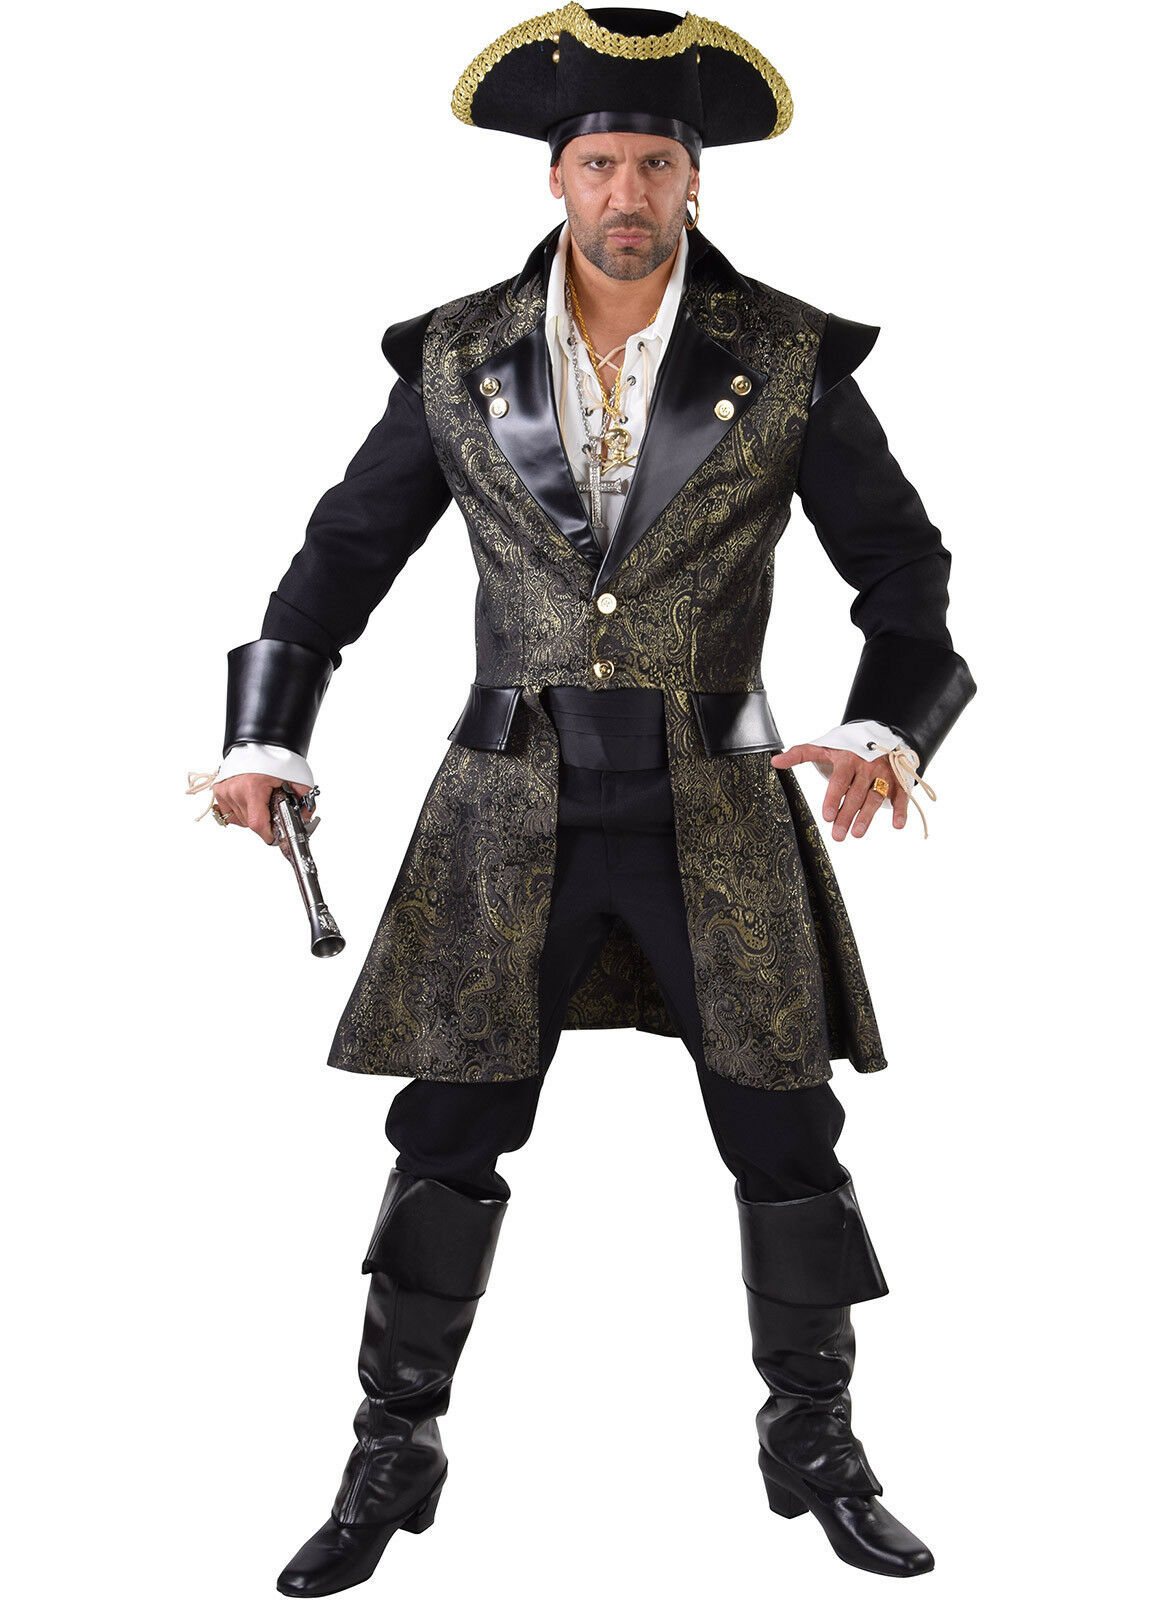 Deluxe Quality  PIRATE Jacket - Black / Gold Brocade